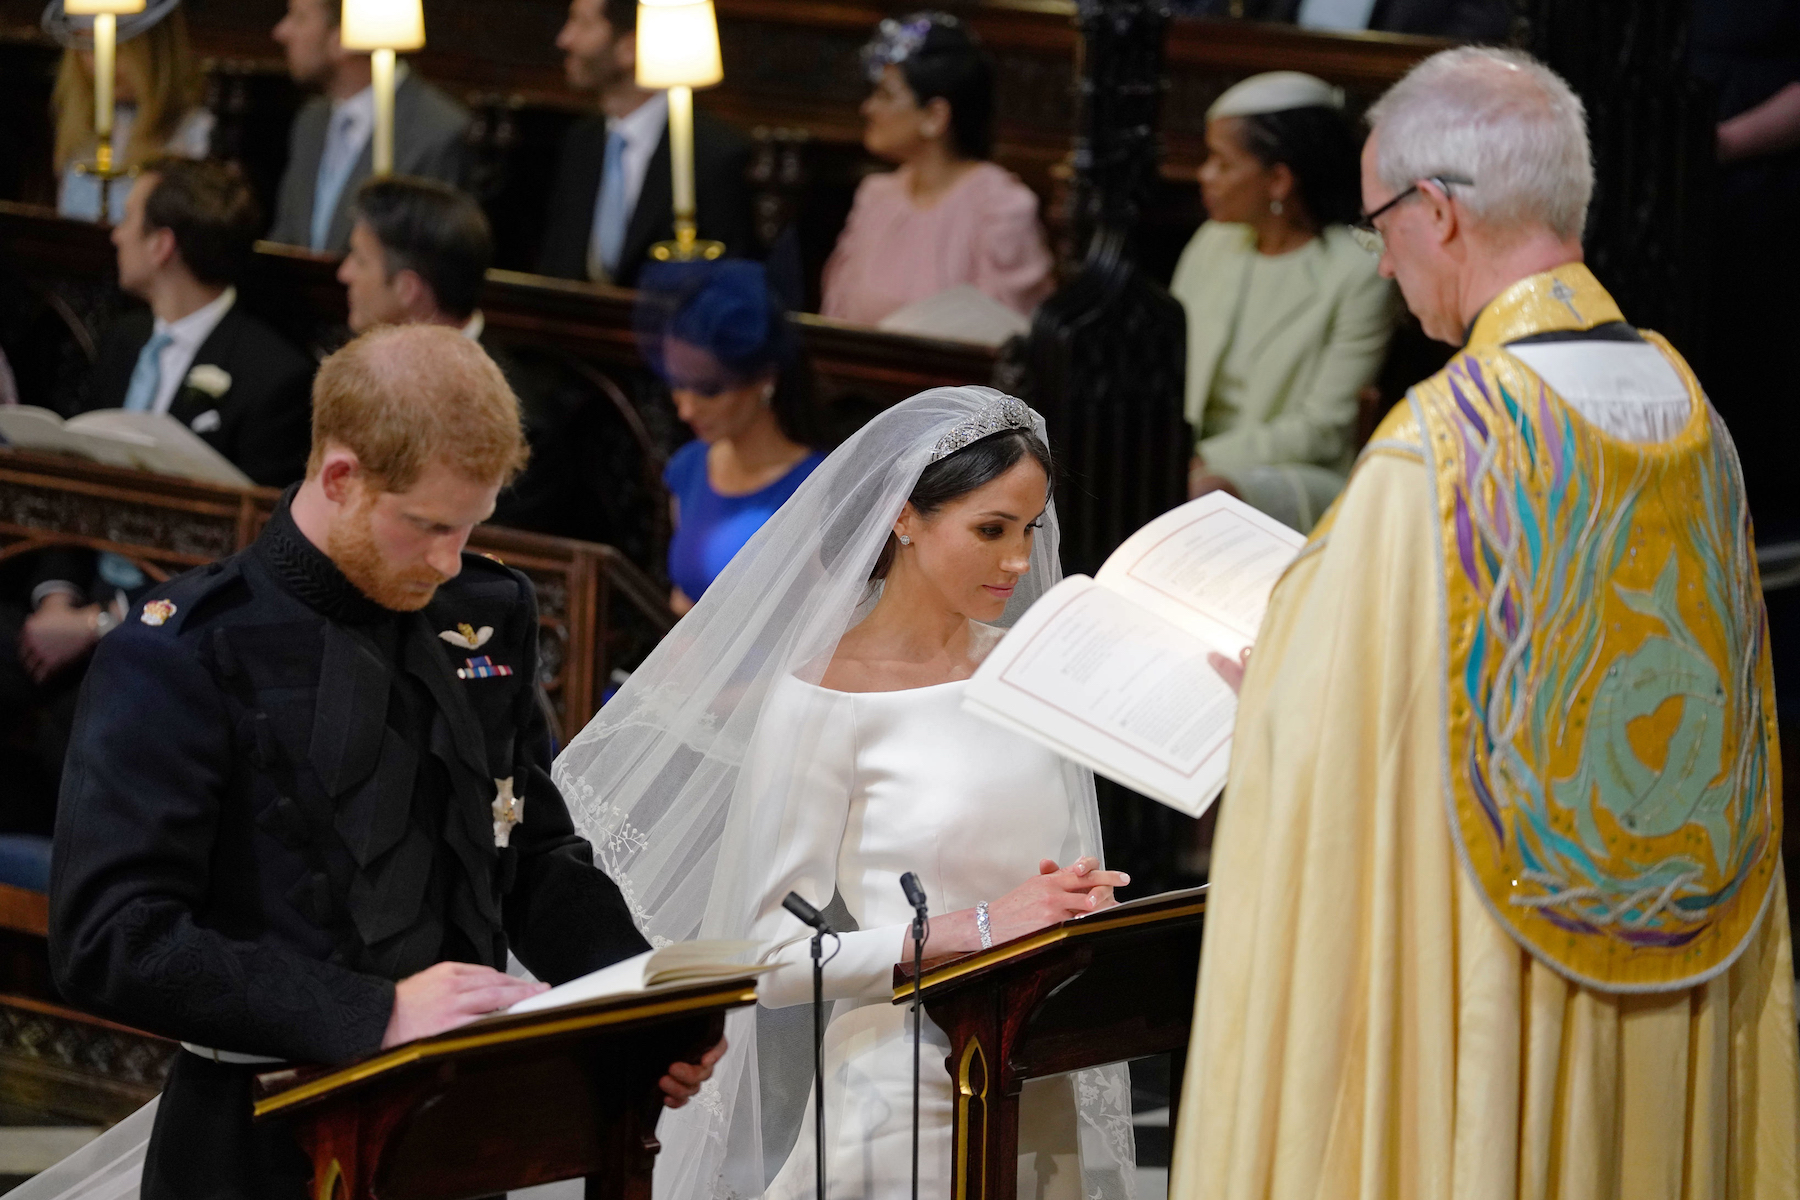 "<div class=""meta image-caption""><div class=""origin-logo origin-image kgo""><span>kgo</span></div><span class=""caption-text"">Britain's Prince Harry, Duke of Sussex (L) and US fiancee of Britain's Prince Harry Meghan Markle stand together at the High Altar. (Dominic Lipinsky/AFP/Getty Images)</span></div>"